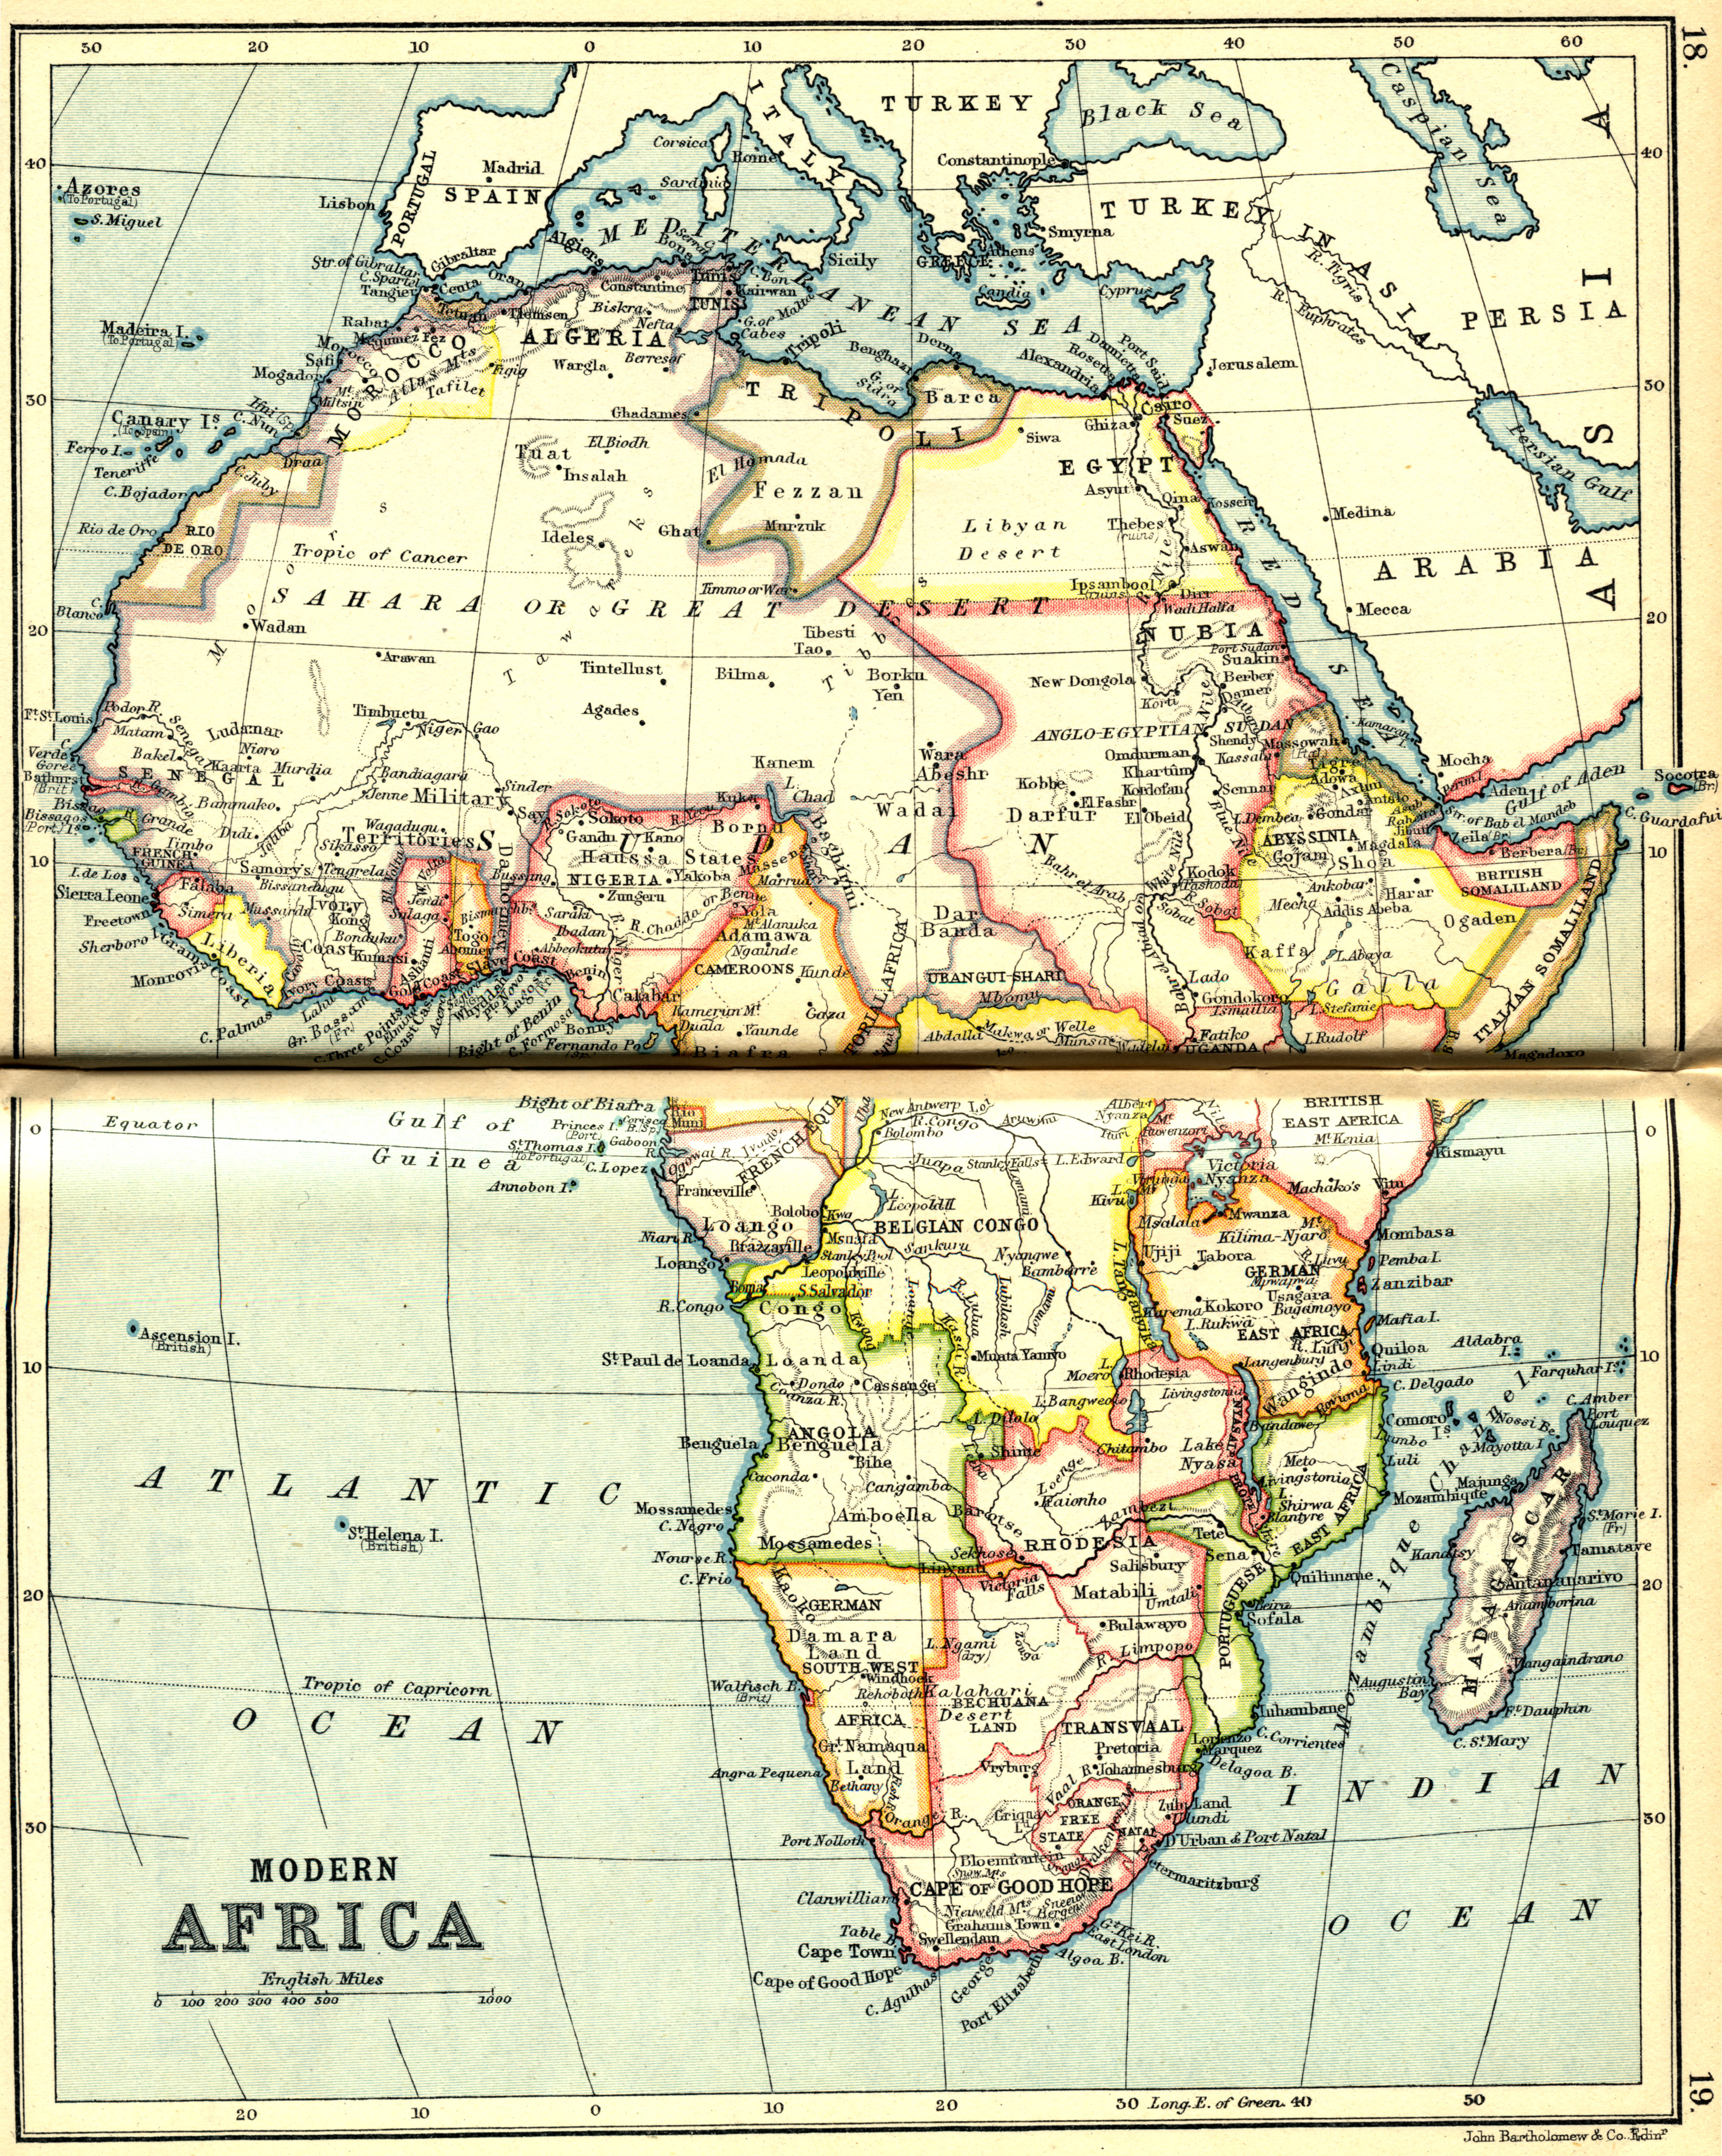 Modern Africa, 1913 | Scanned Maps | Map Library | MSU Libraries